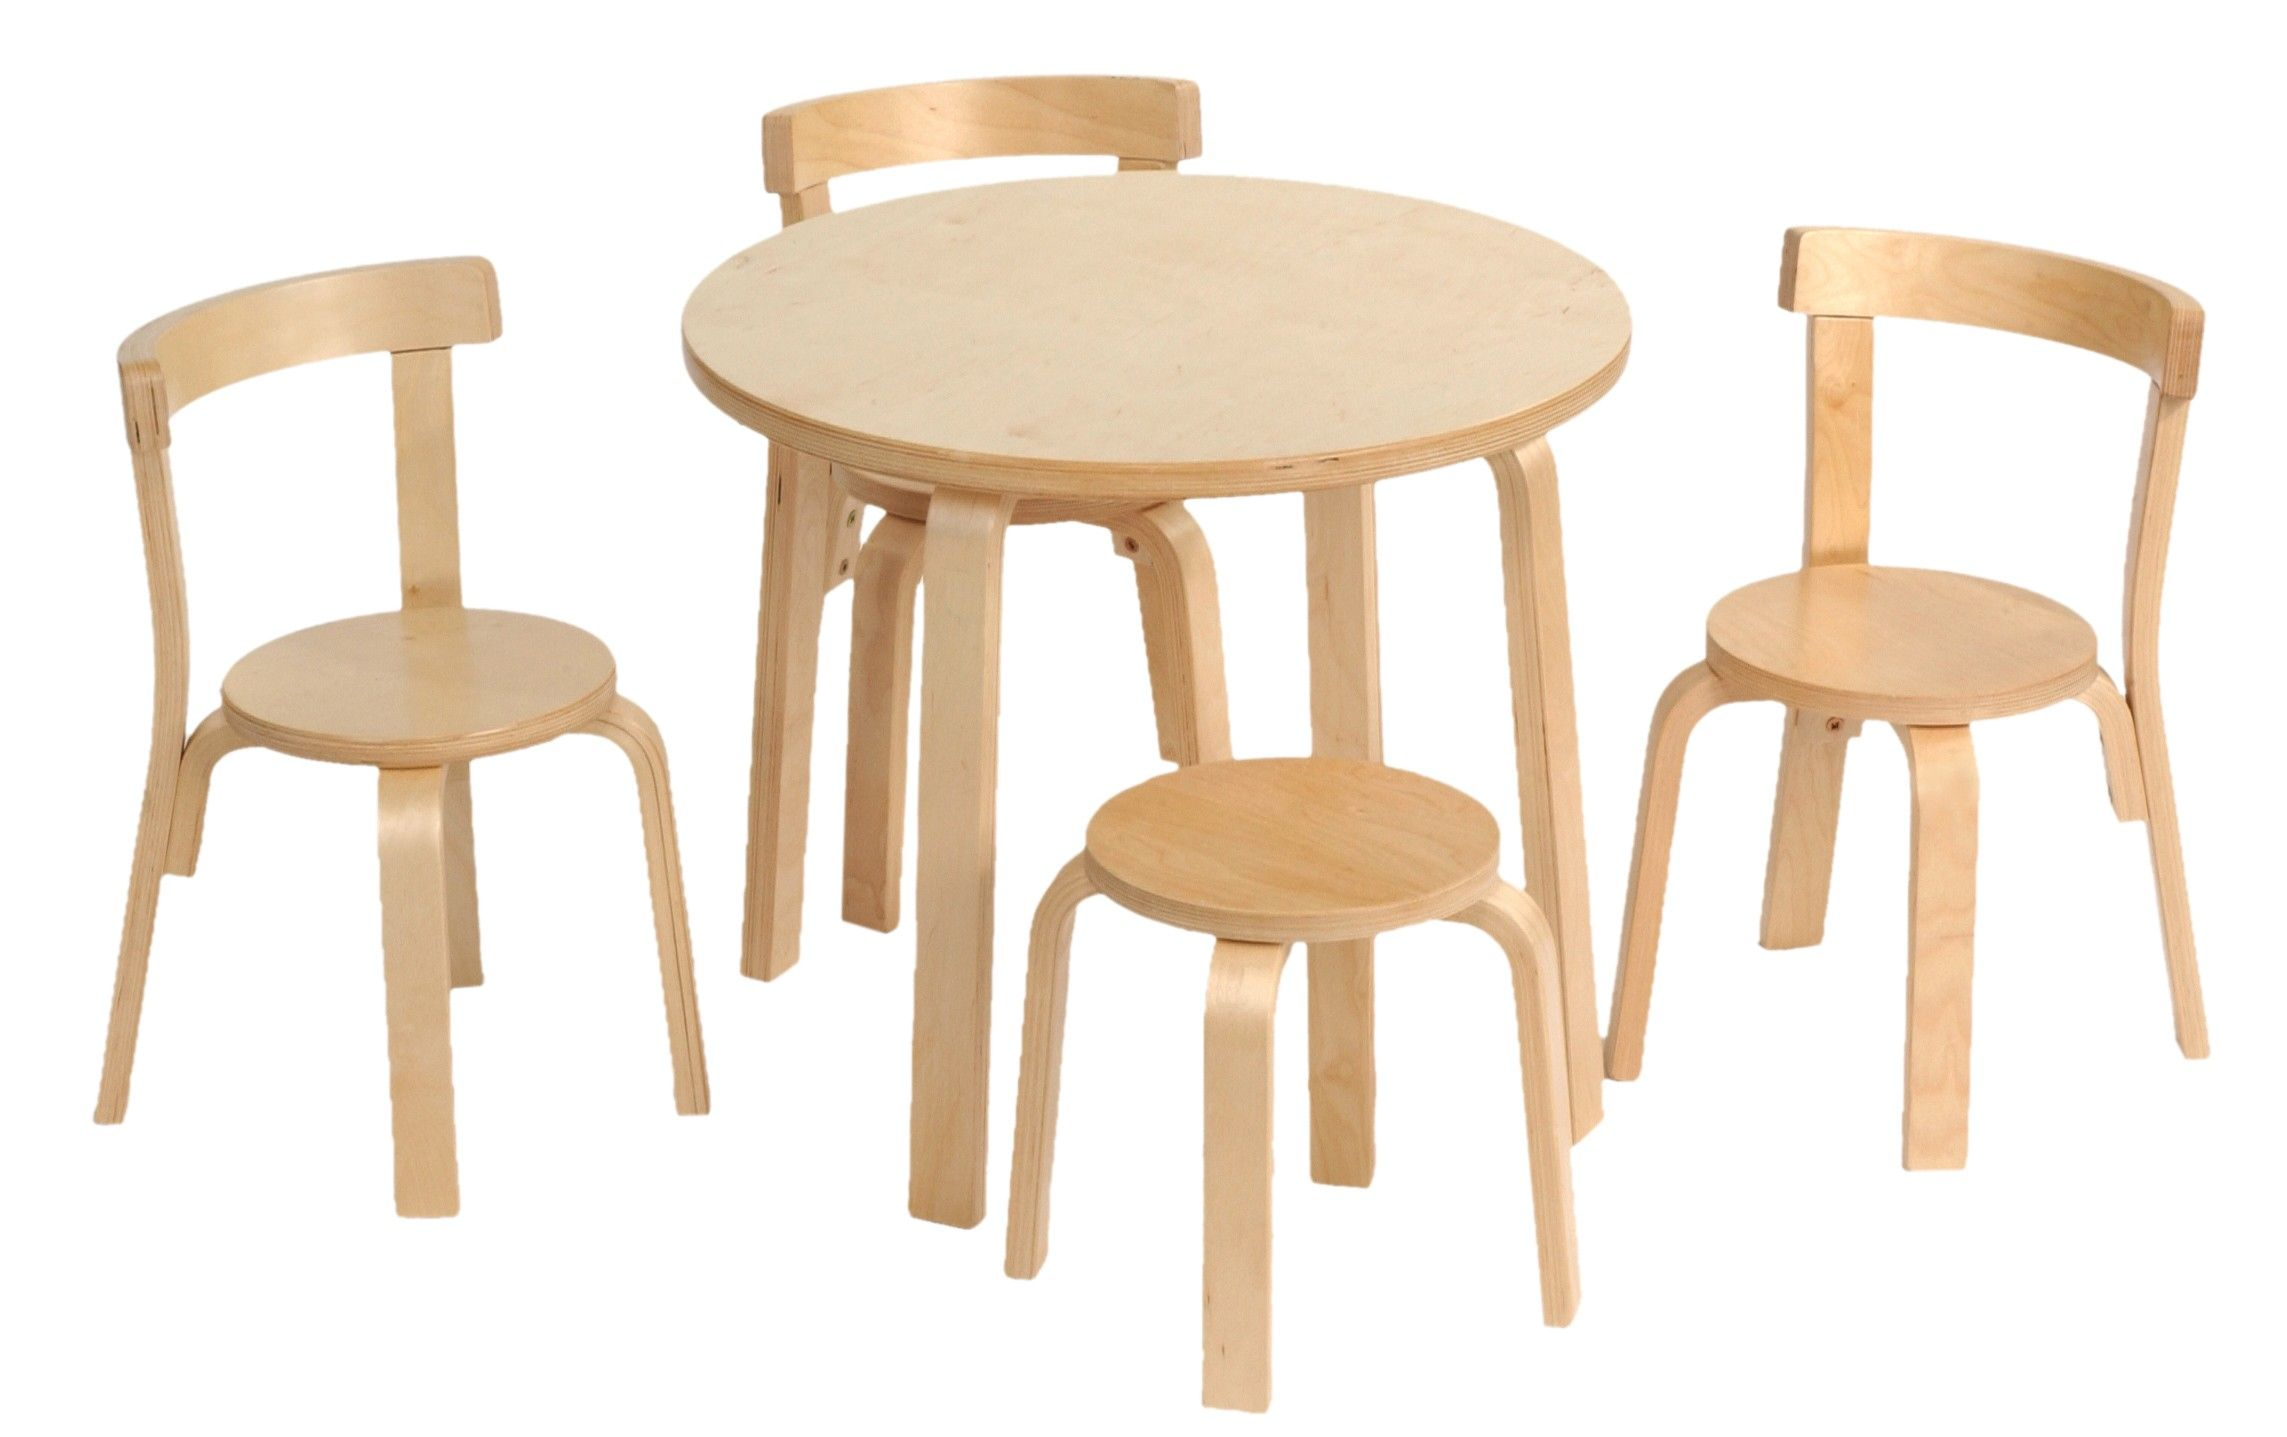 Kids Room Furniture Round White Oak Wood Table With Three Chairs